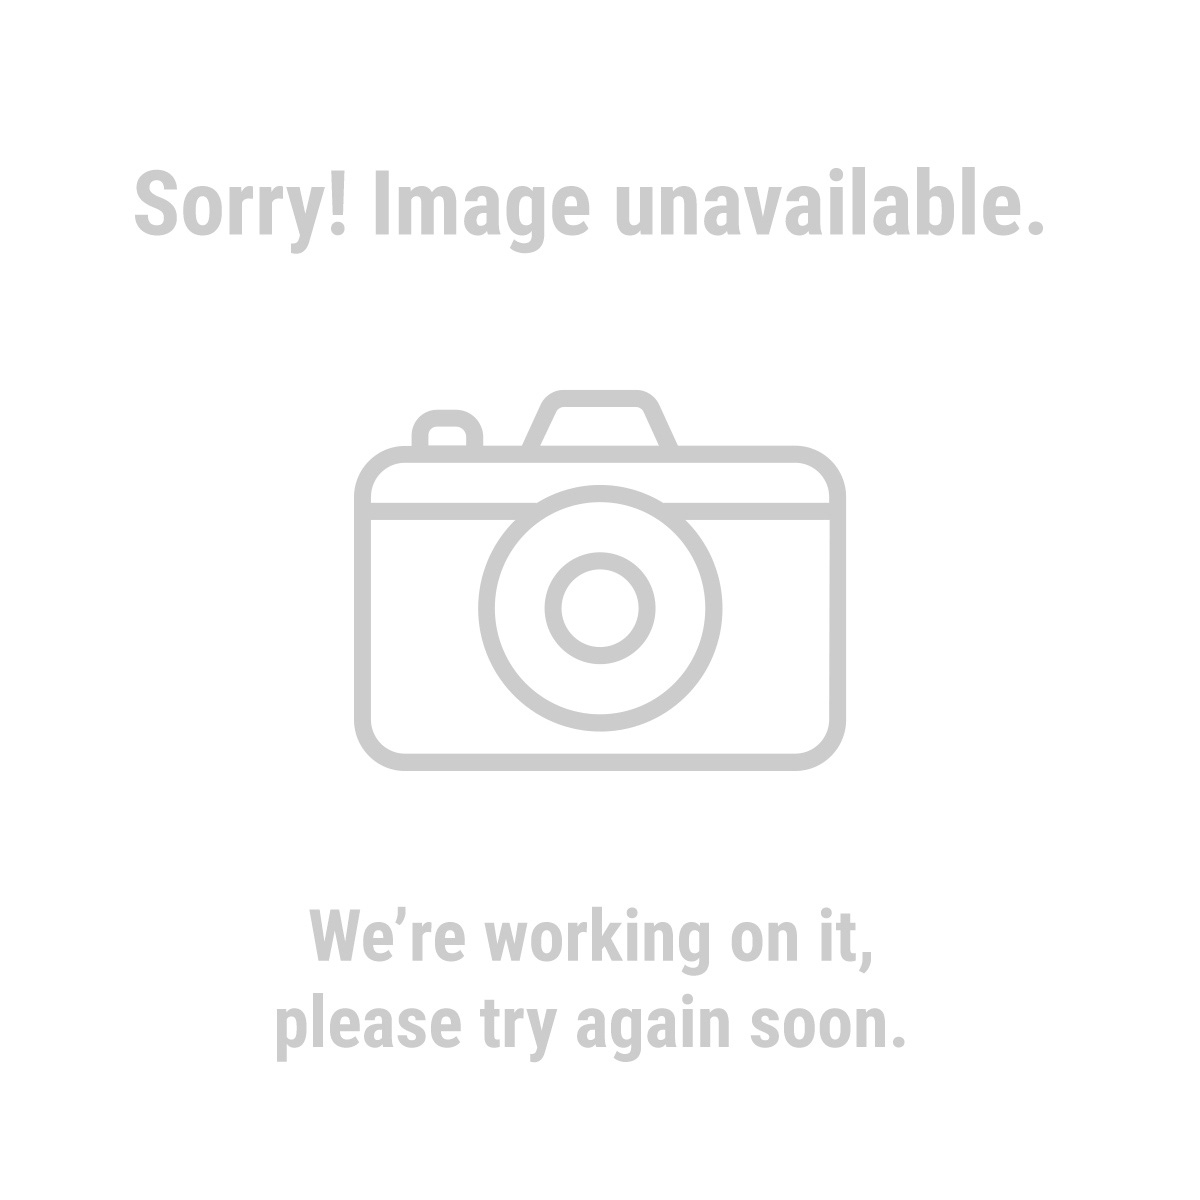 Ironton Trailer Kit